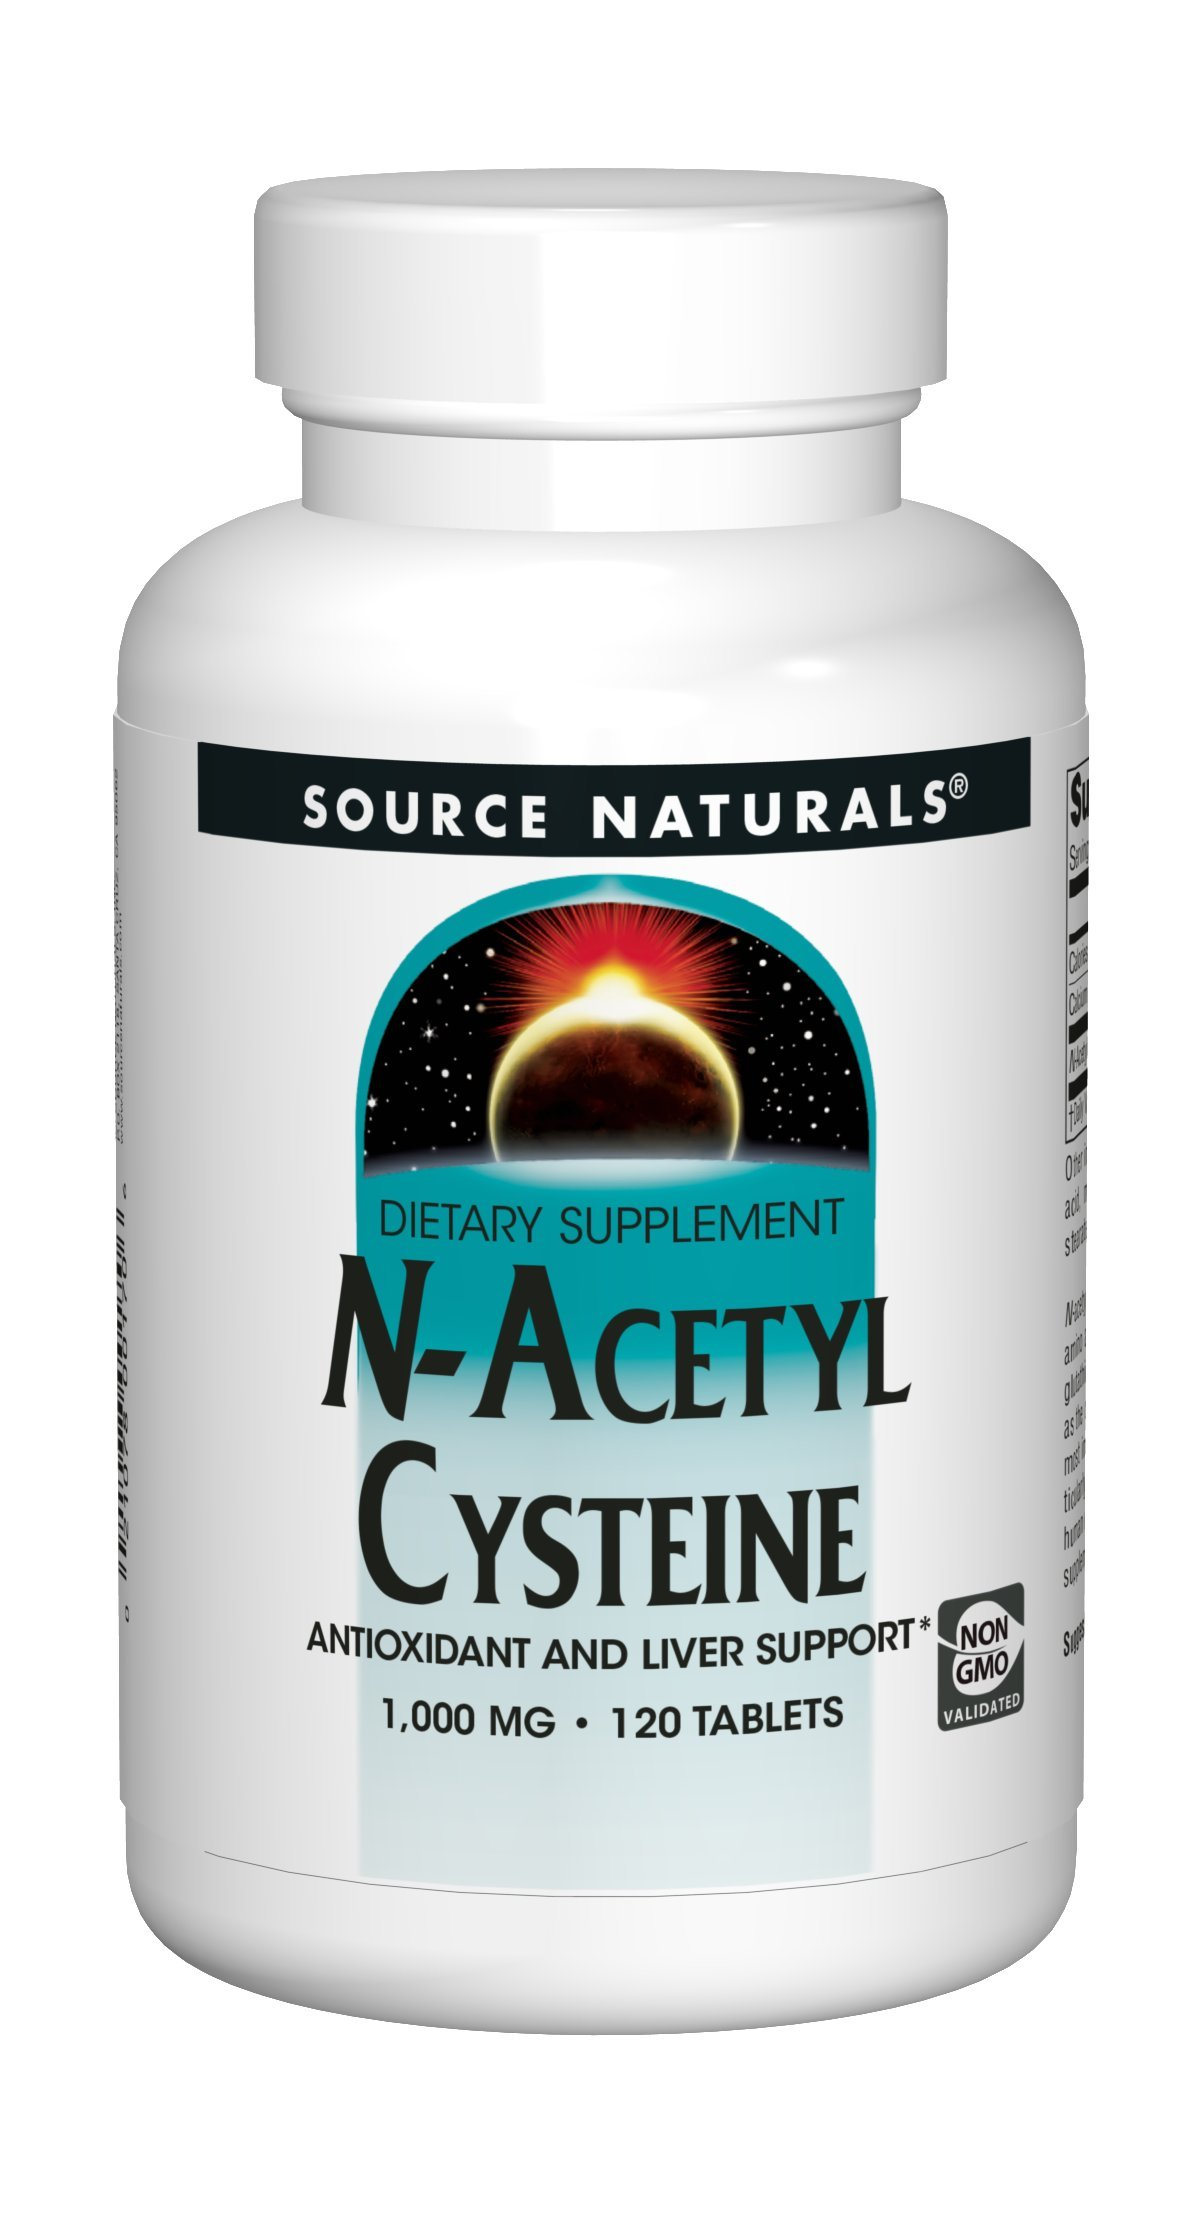 Source Naturals N-Acetyl Cysteine 1000mg Antioxidant - Pure Enzymes - 120 Tablets